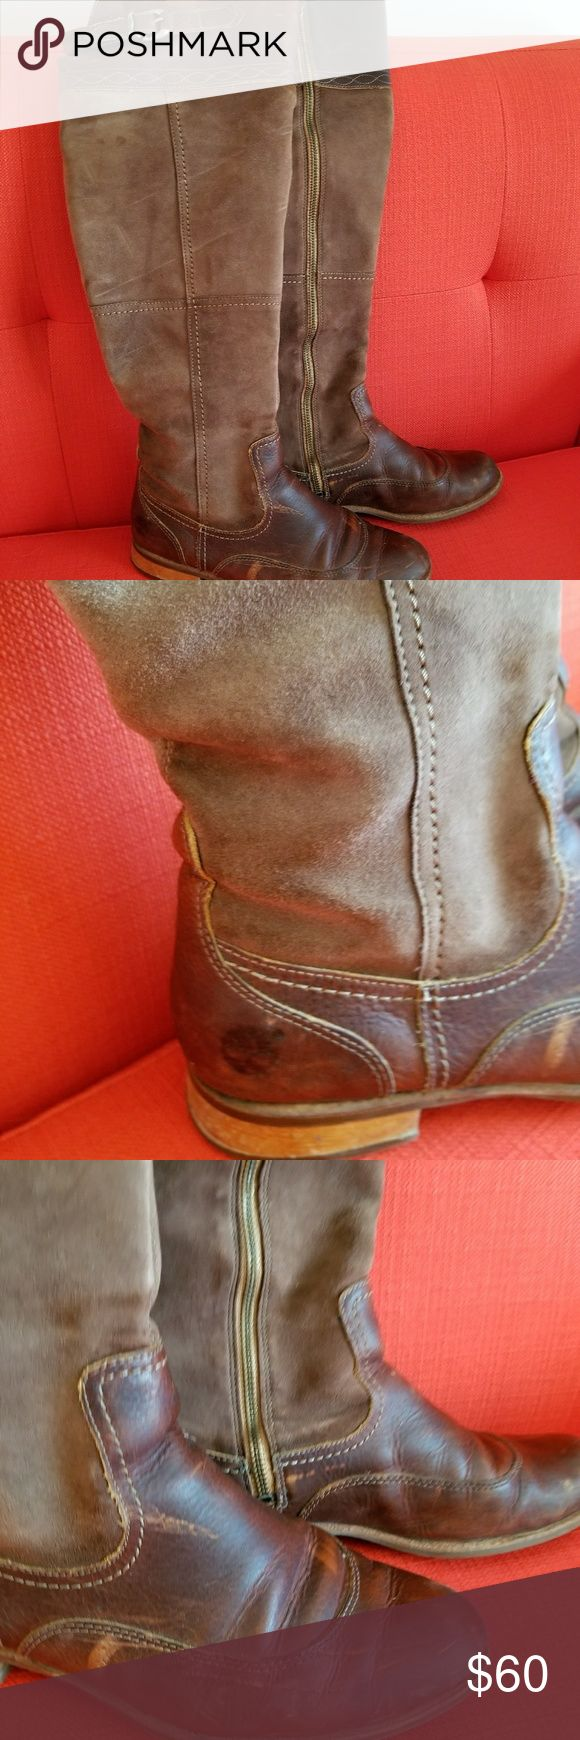 Timberland over the knee vintage boots. Over the knee vintage boots in nice soft leather. Timberland Shoes Over the Knee Boots